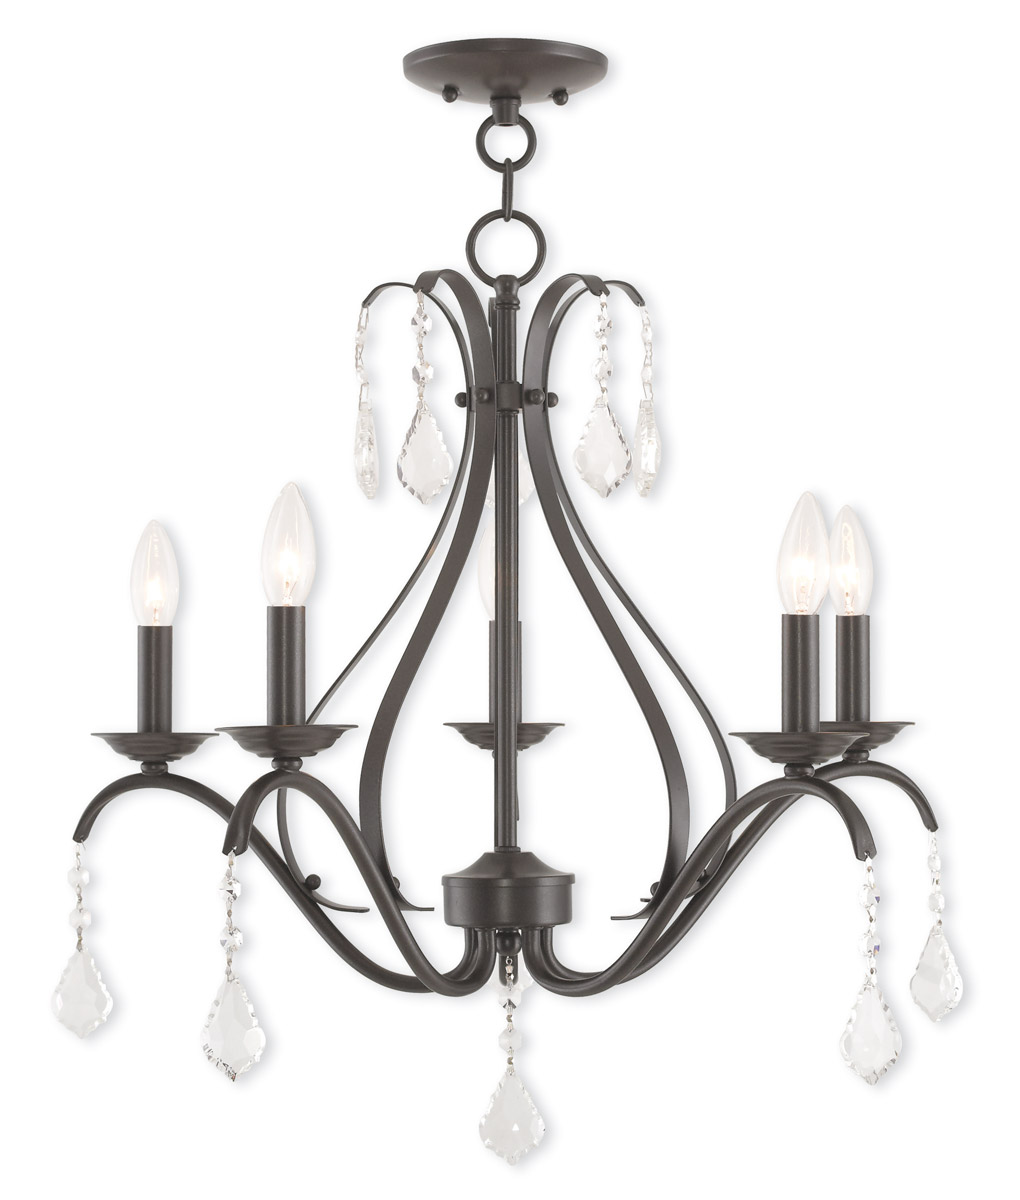 Livex lighting 40845 92 caterina 5 light chandelier english bronze picture 1 of 7 arubaitofo Image collections